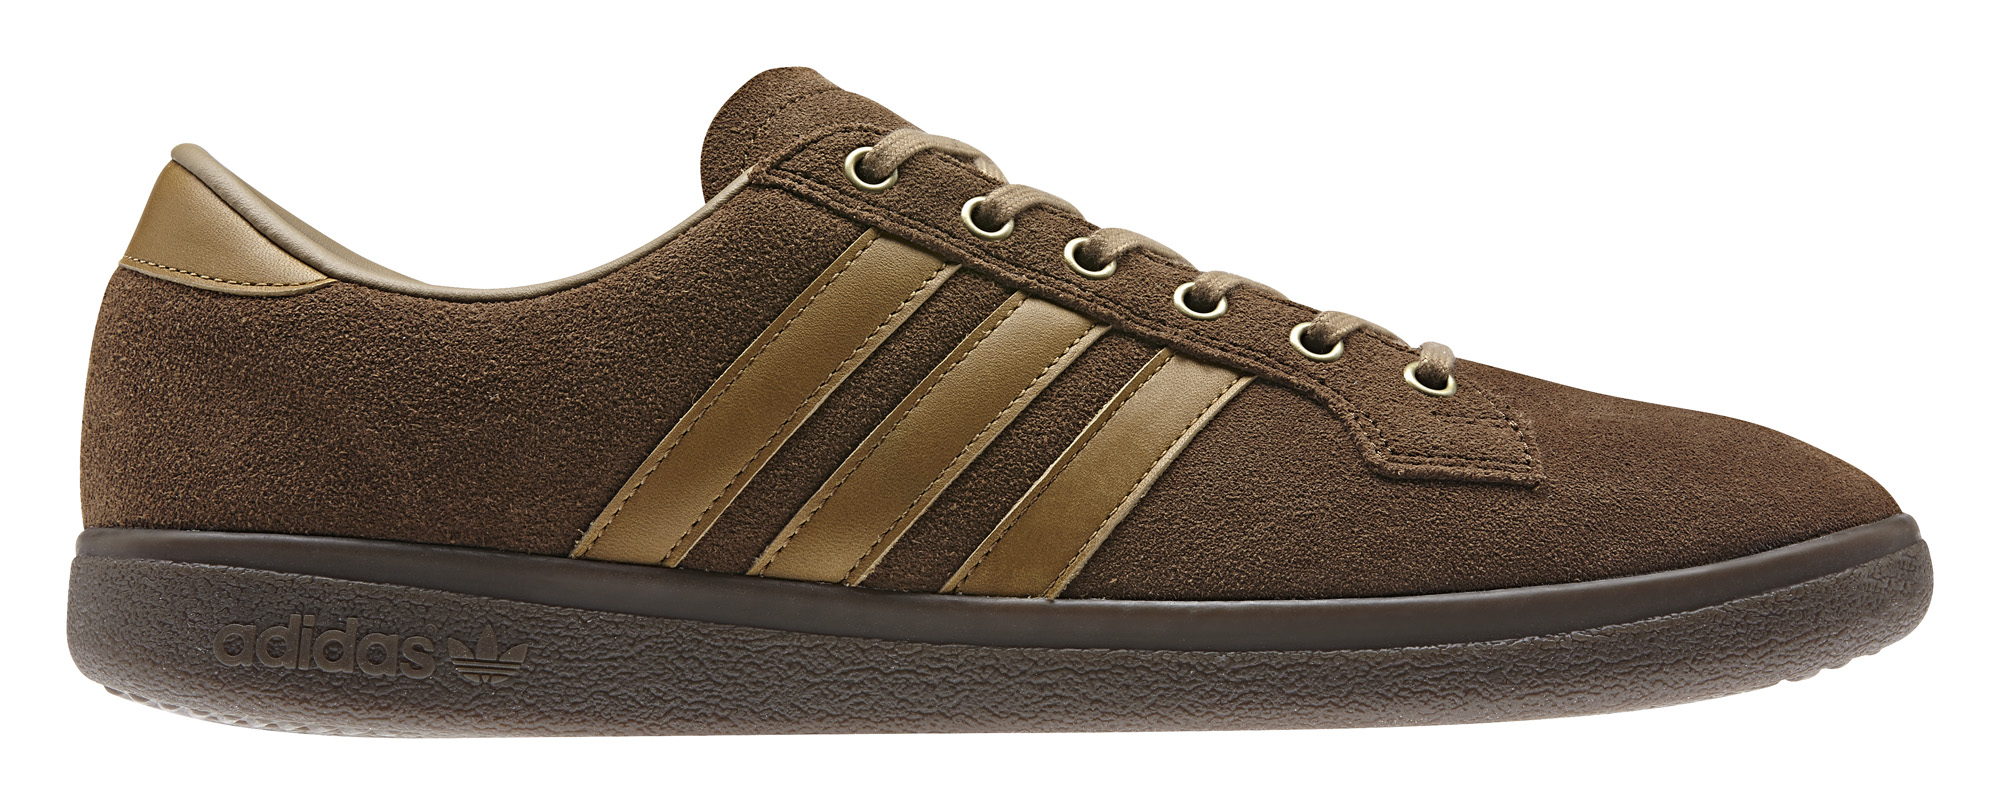 Adidas Spezial Bulhill Brown Profile